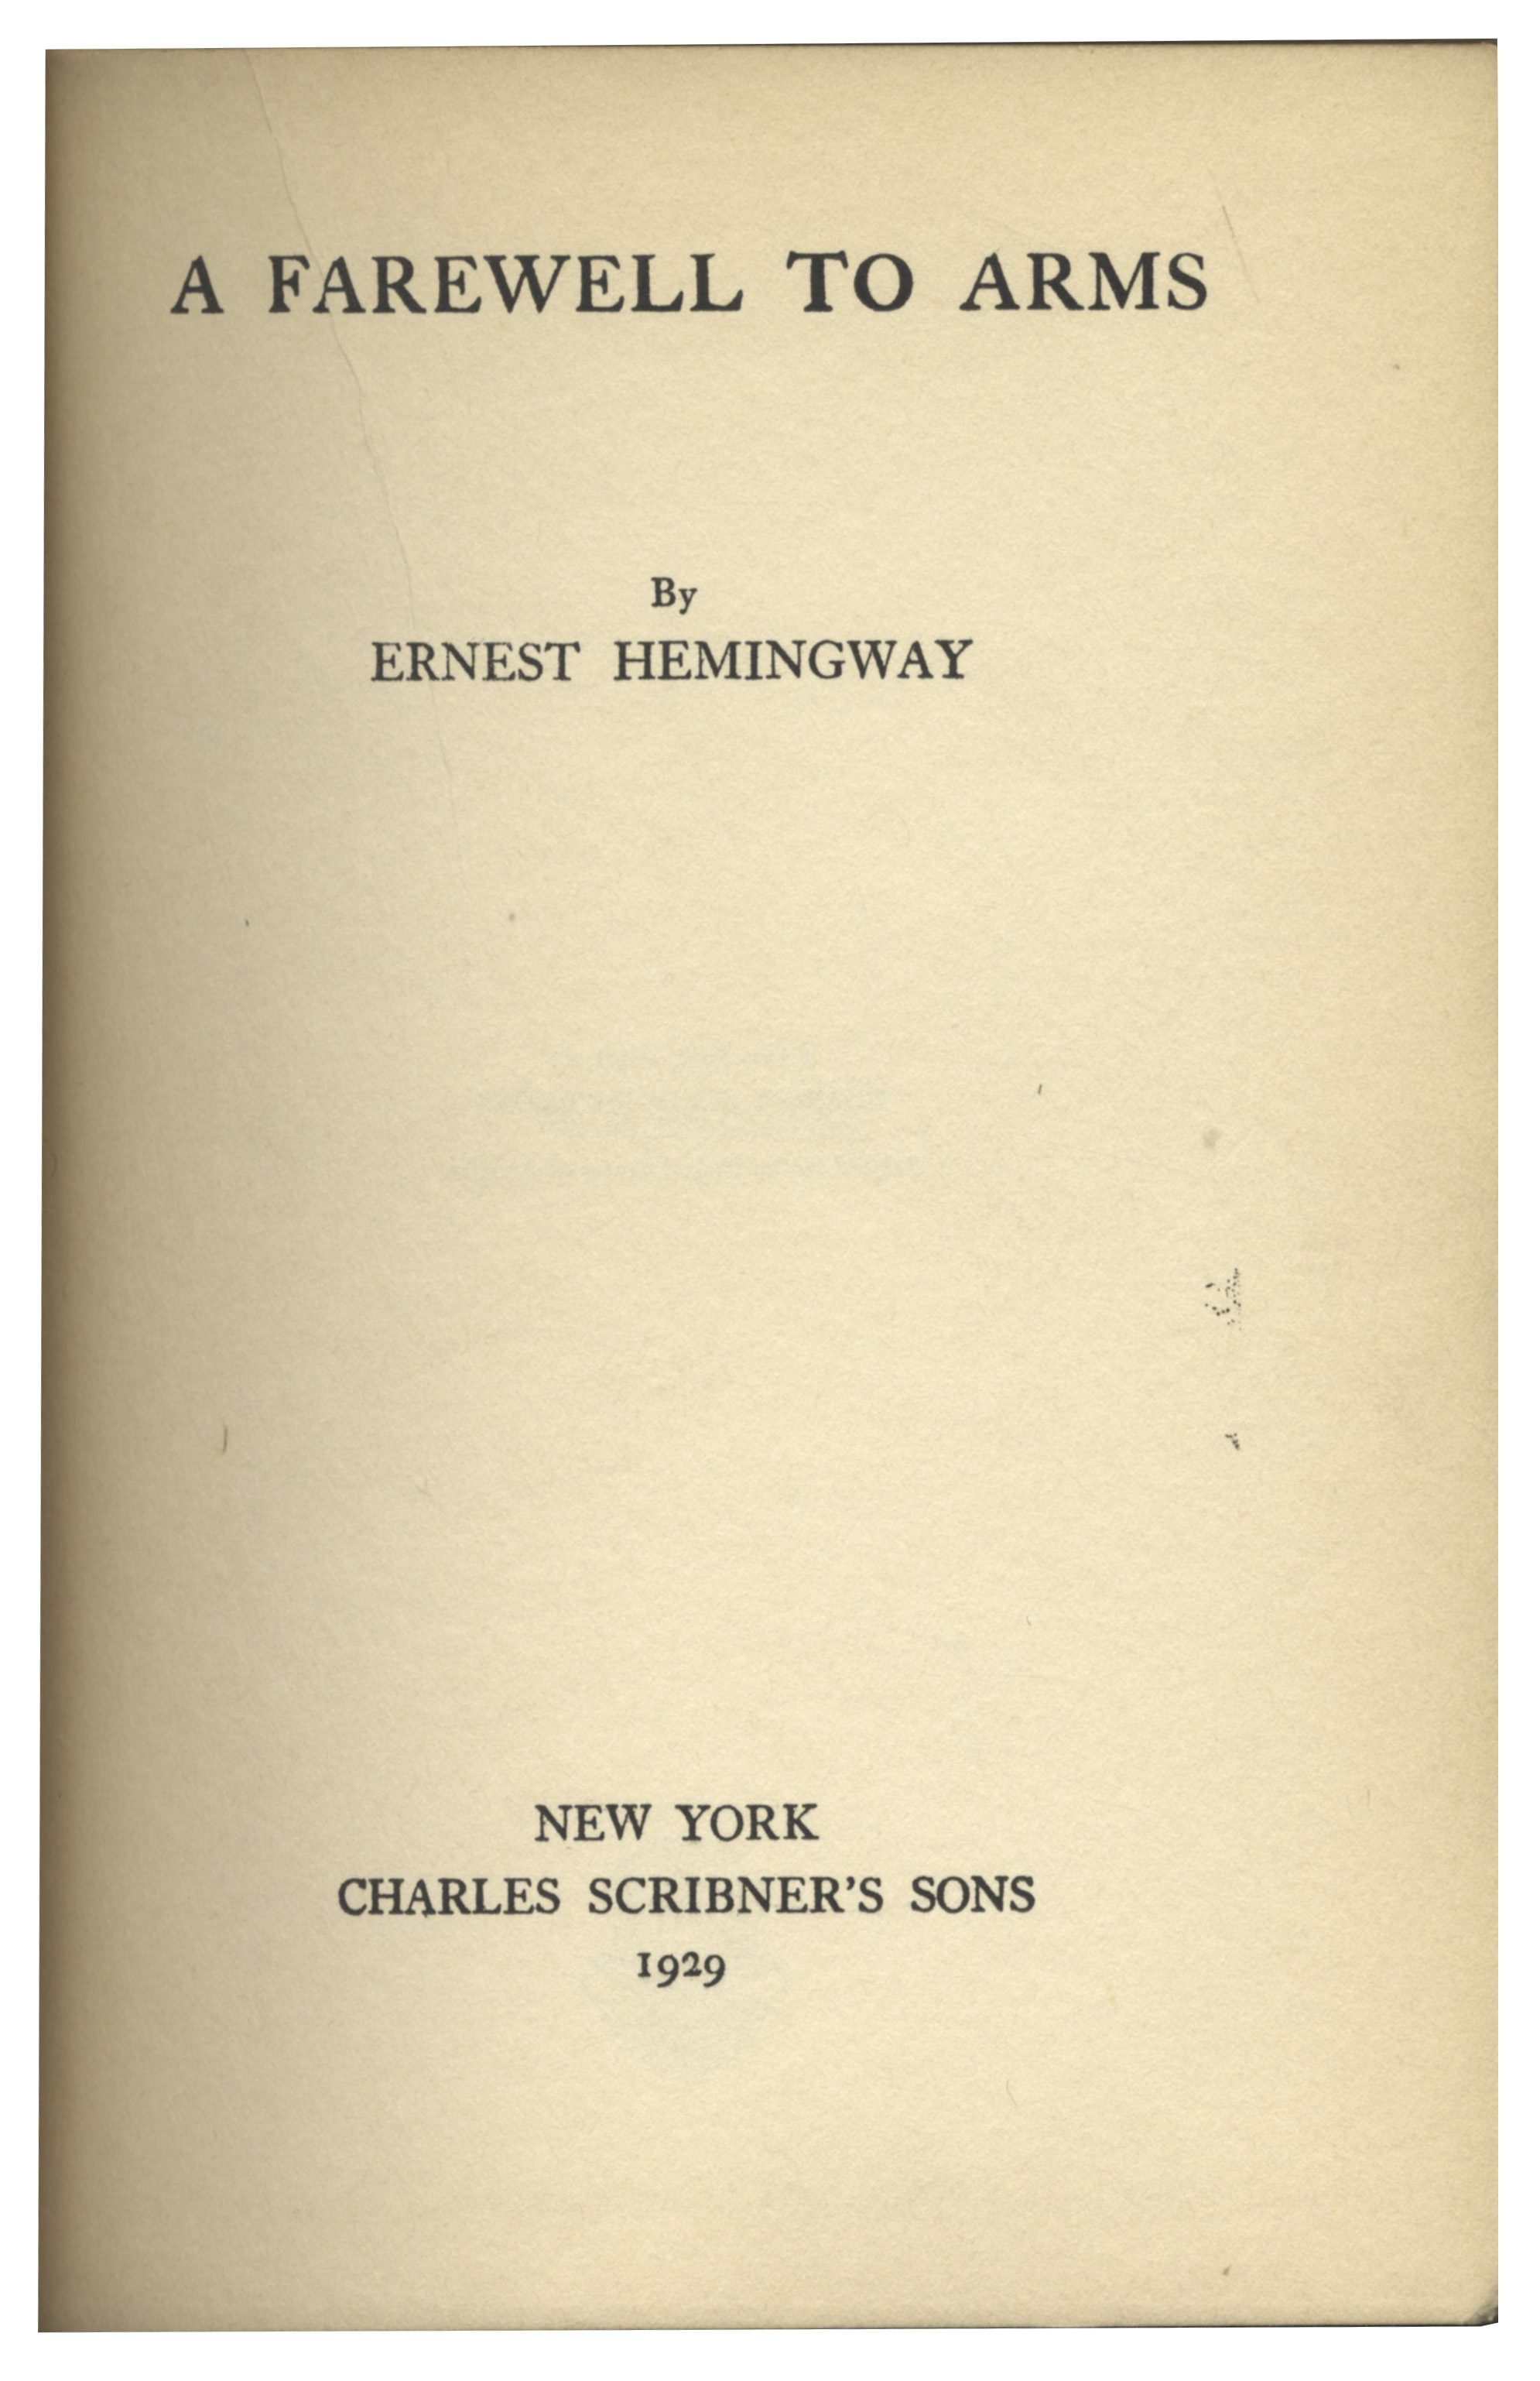 an analysis of nature symbolism in a farewell to arms by ernest hemingway Hemingway, ernest a farewell to arms (1929) analysis by 21 critics - download as pdf file (pdf), text file (txt) or read online mnmnv.